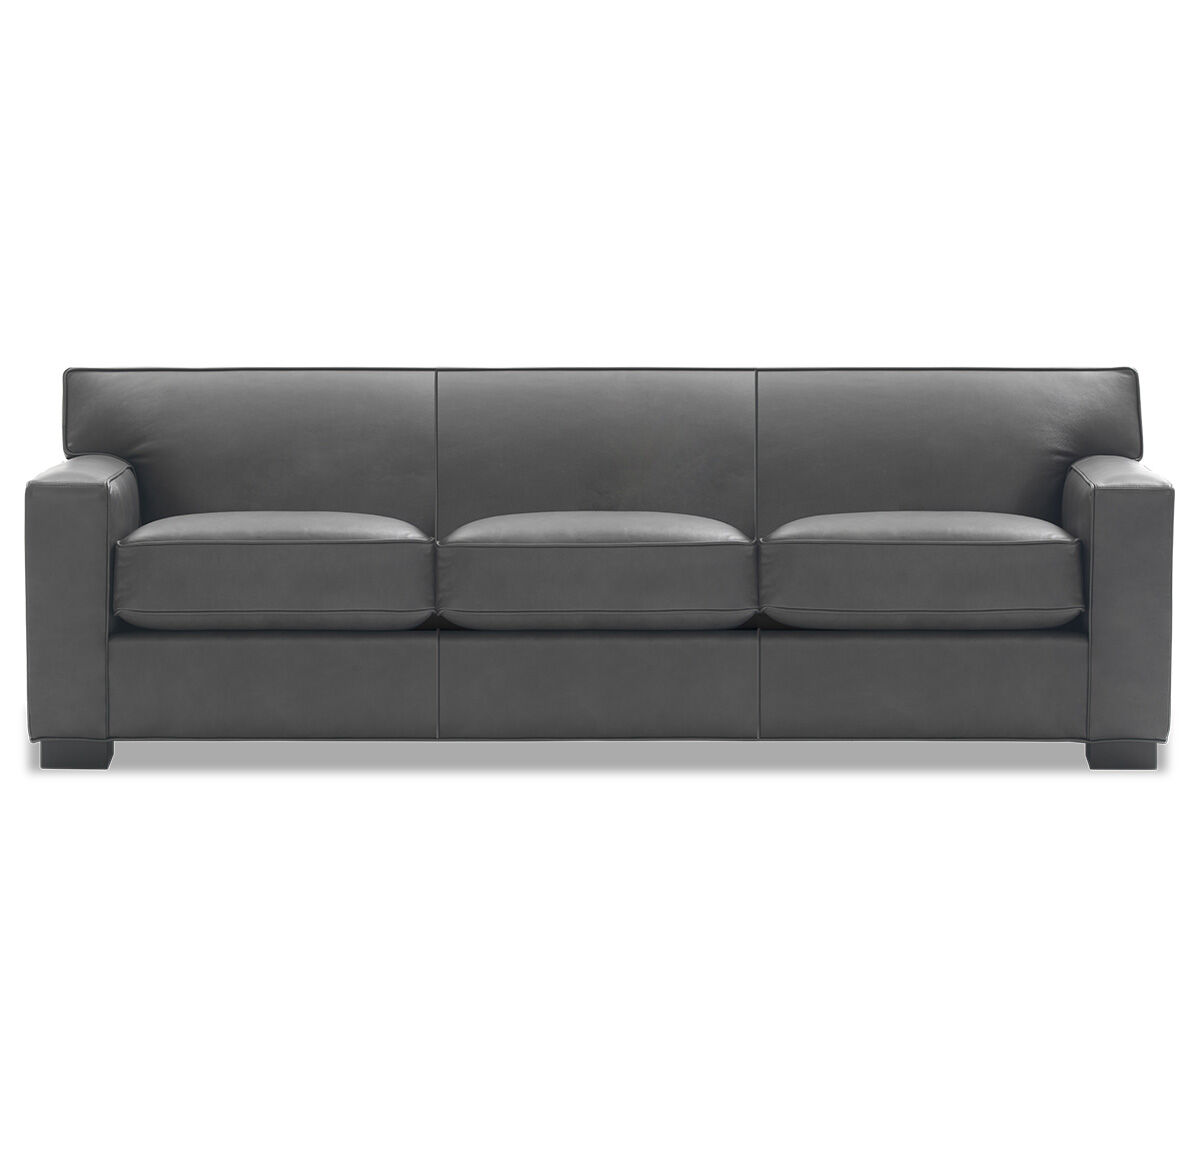 JEAN LUC LEATHER SOFA, MANCHESTER   GRAPHIT, Hi Res